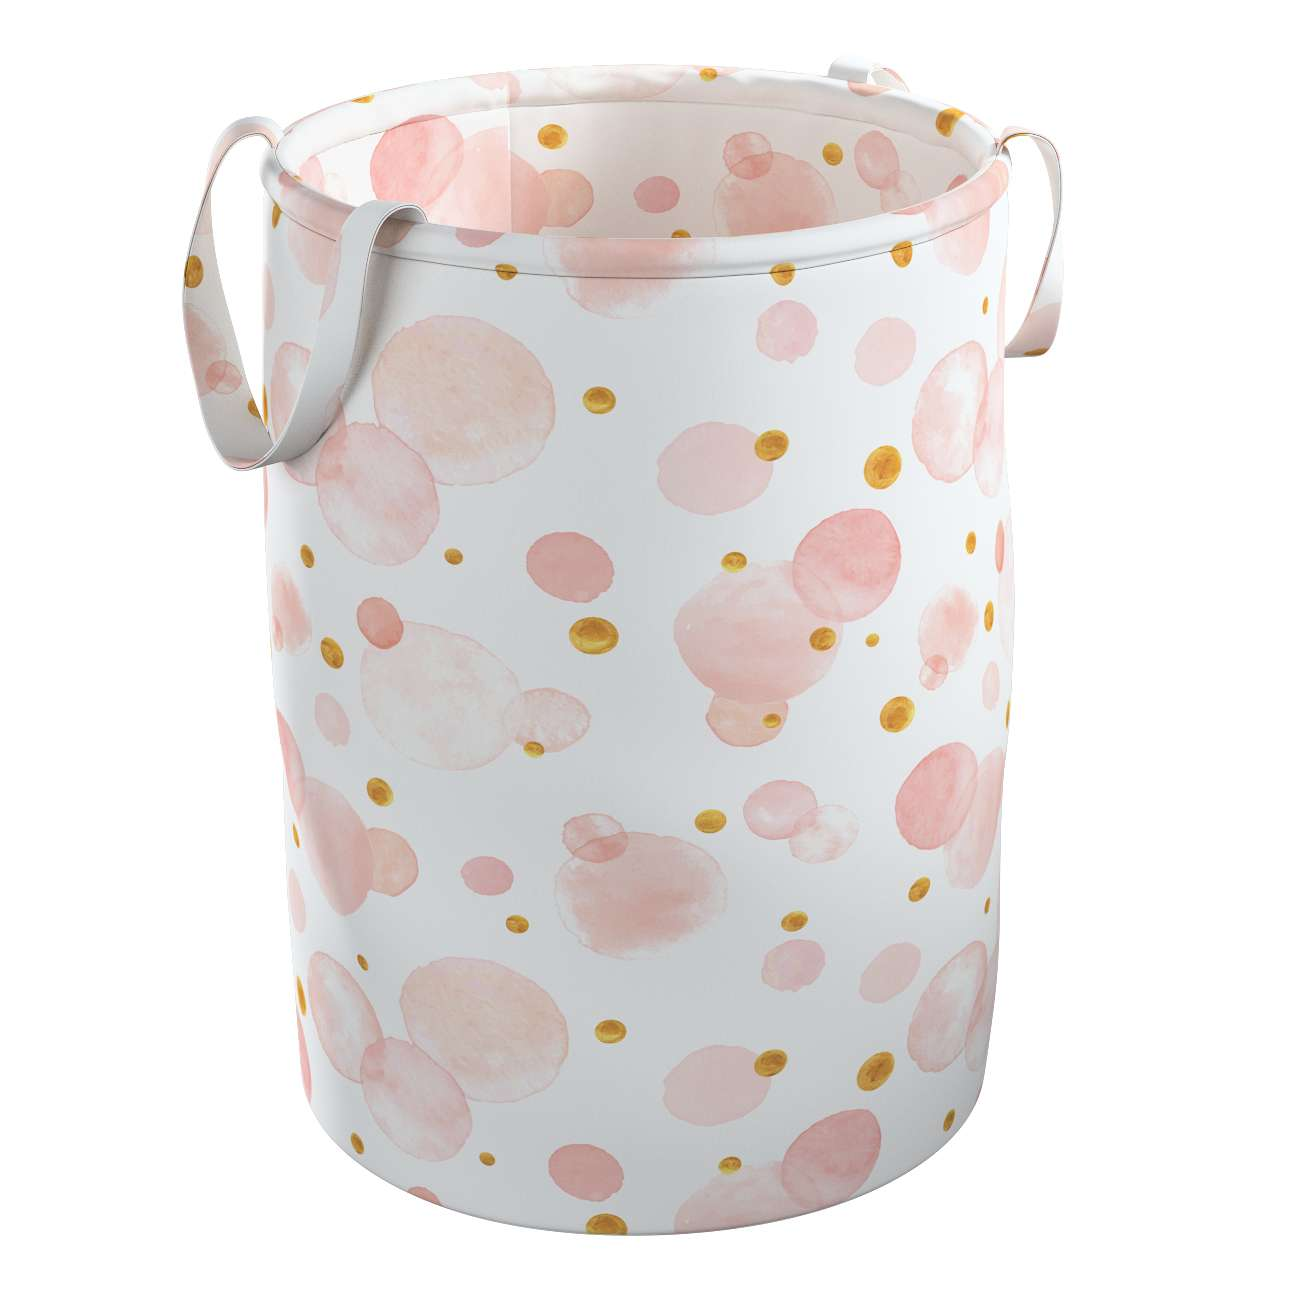 Tobi toy basket in collection Magic Collection, fabric: 500-13